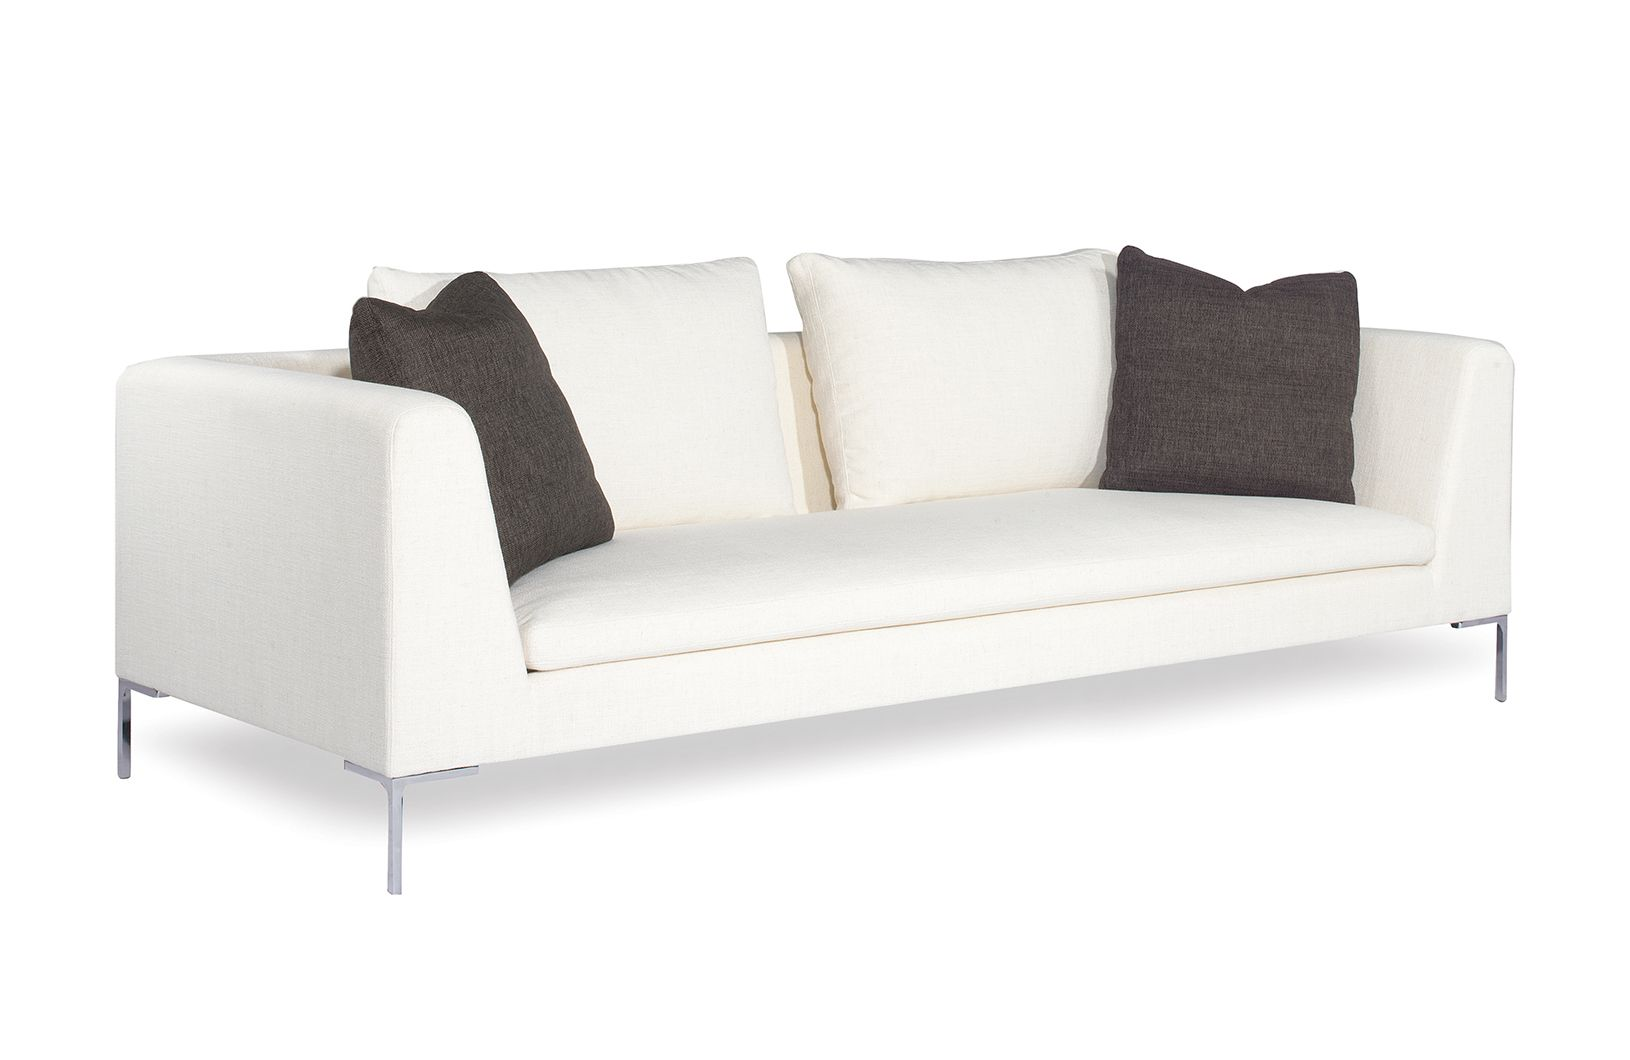 Furniture In Knoxville Modern Decor Modern Furniture Sofa